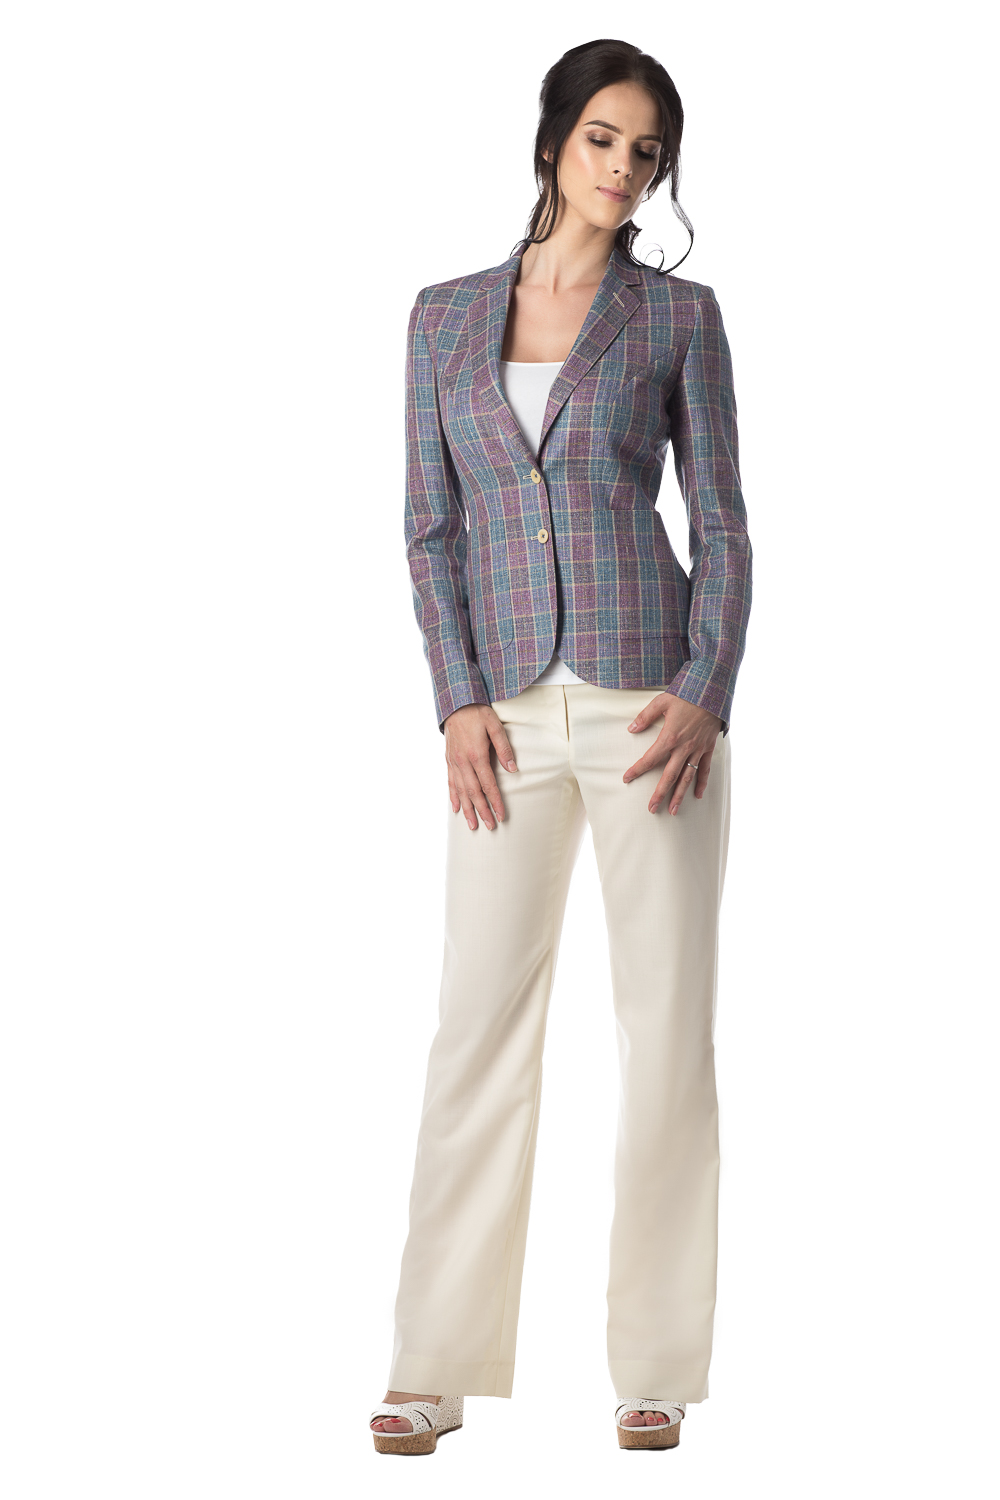 www.richardfox.co Ladies sport coat outfit